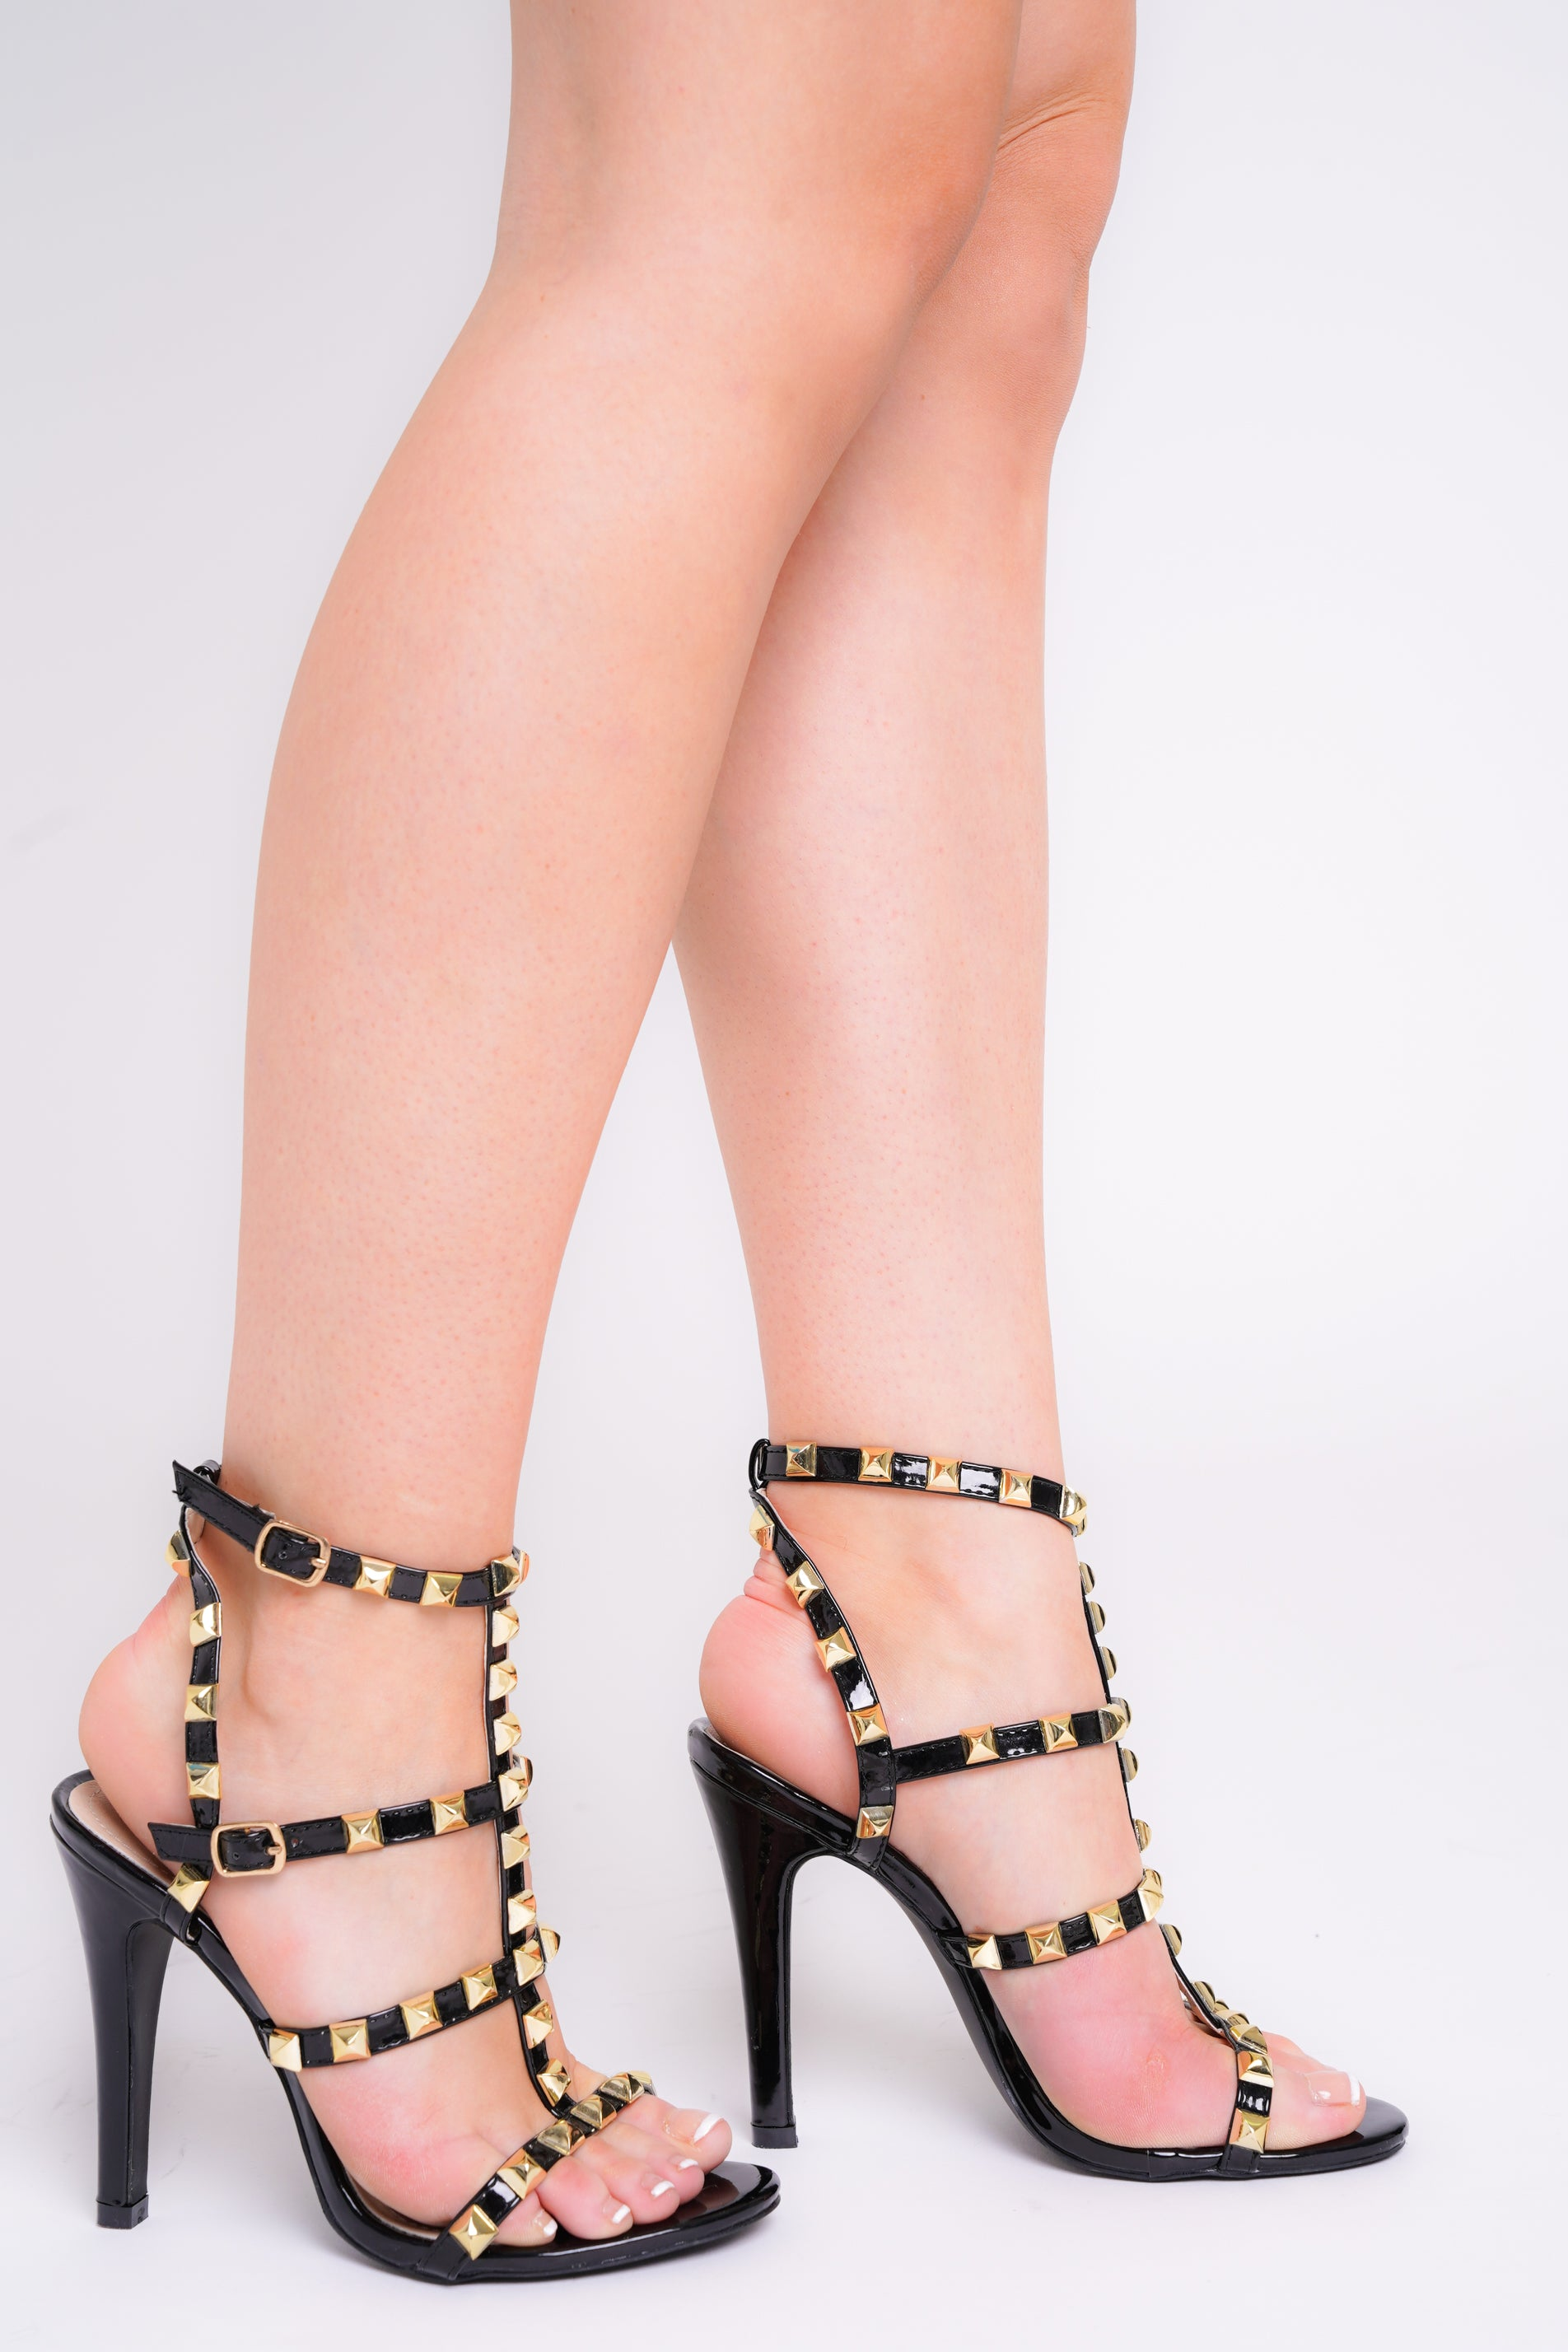 Gianna Black Gold Stud Stiletto Heels